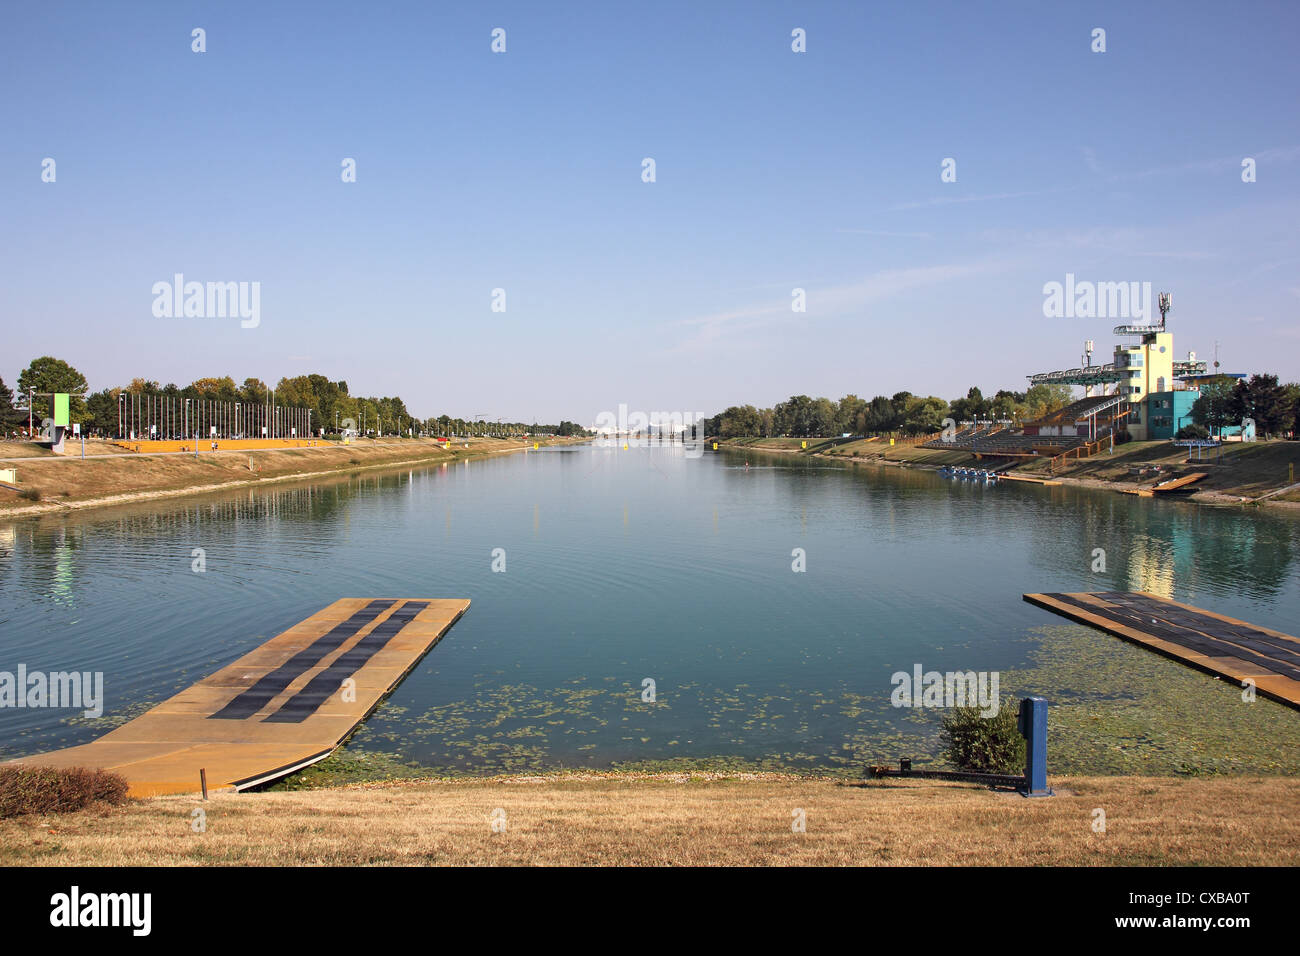 Rowing track with eight lanes for racing boats and bleachers for spectators - Stock Image